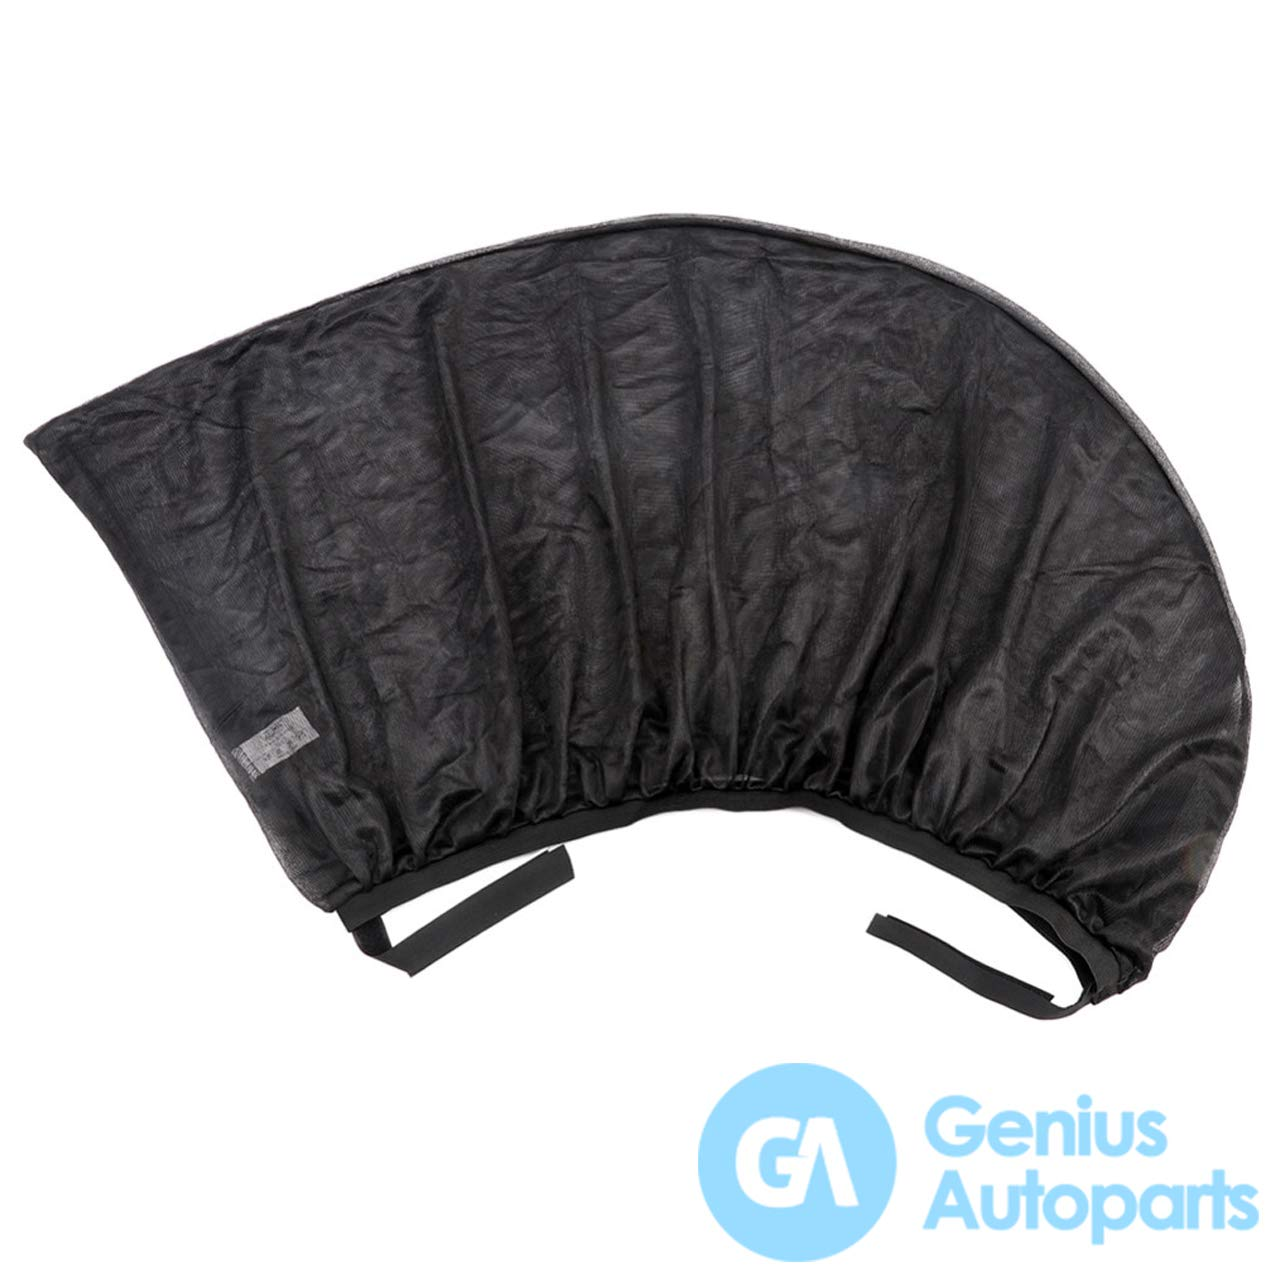 Genius Autoparts Car Sun Shades Breathable Mesh UV Protection Window Cover for Kids